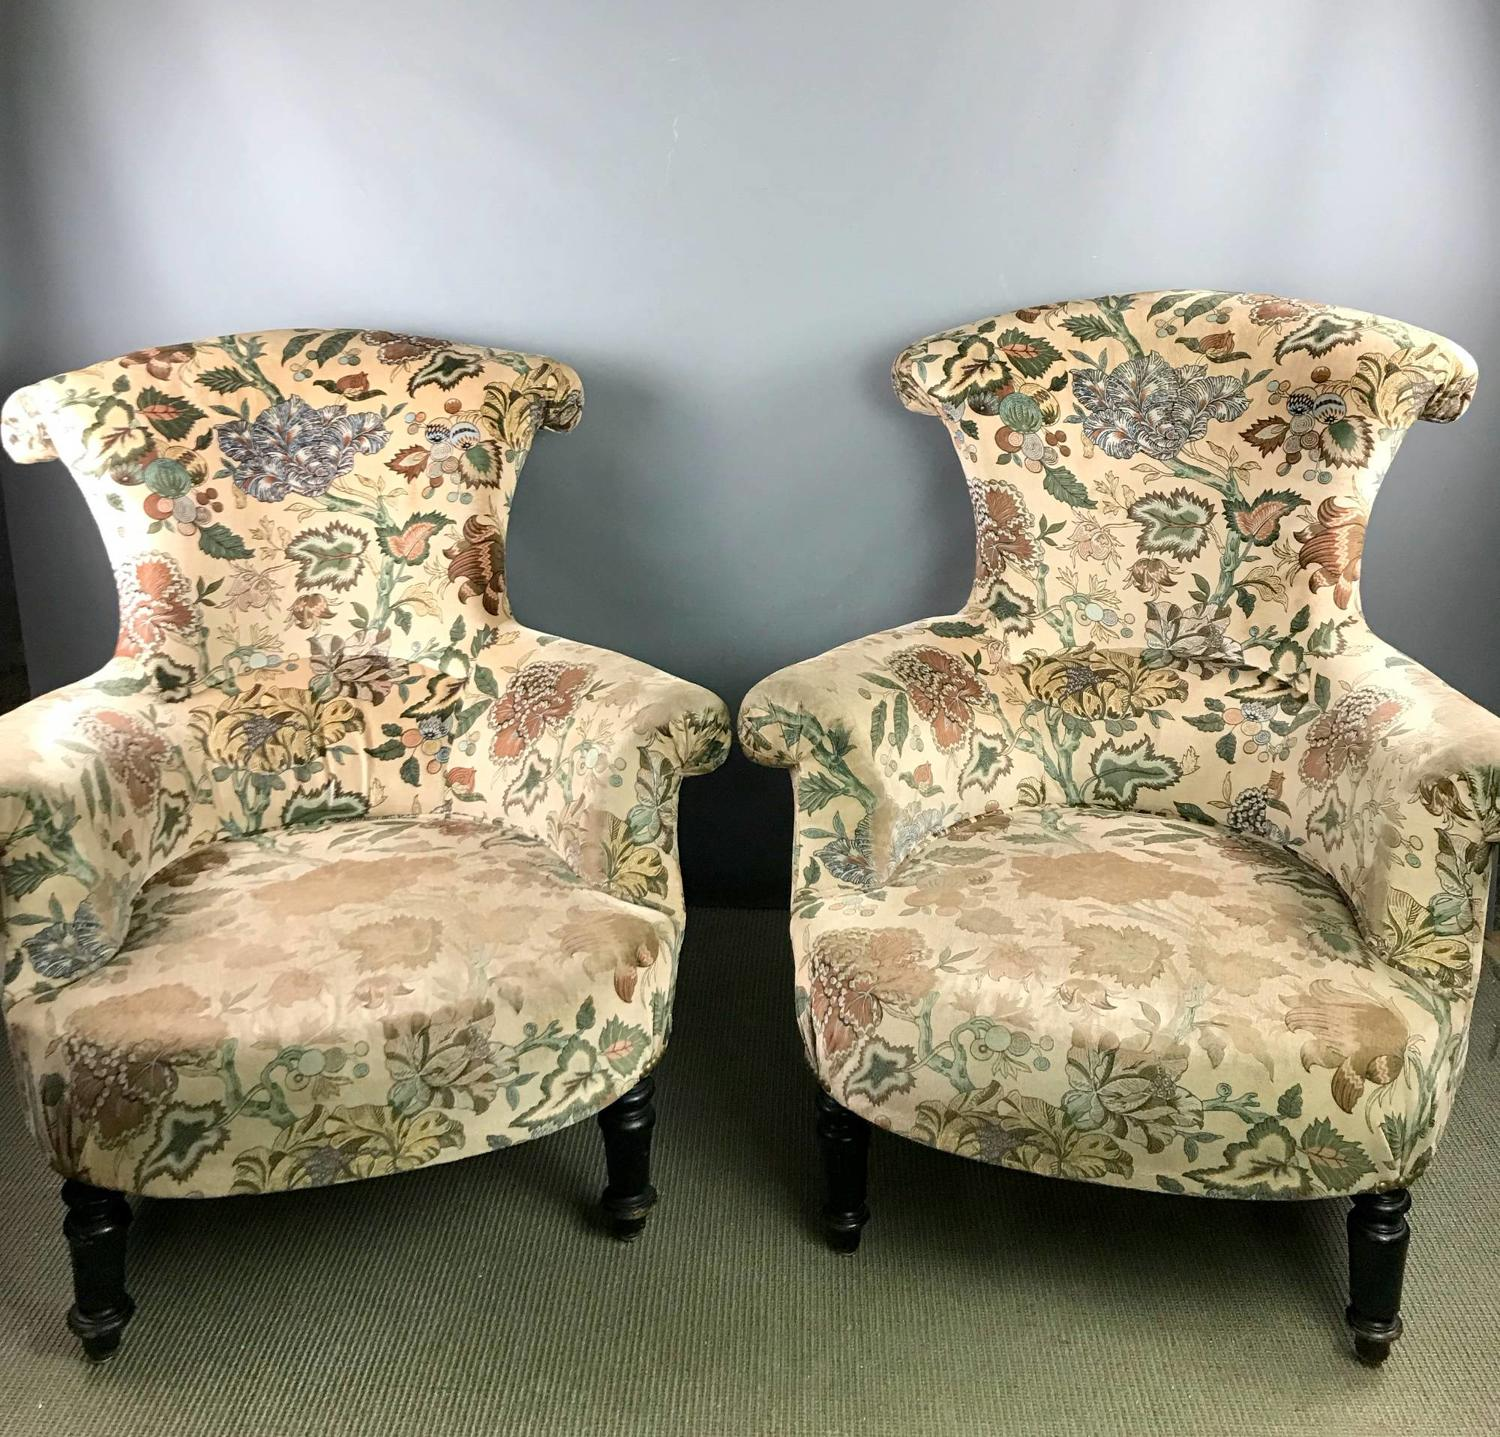 Pair of French Napoleon III Armchairs for recovering